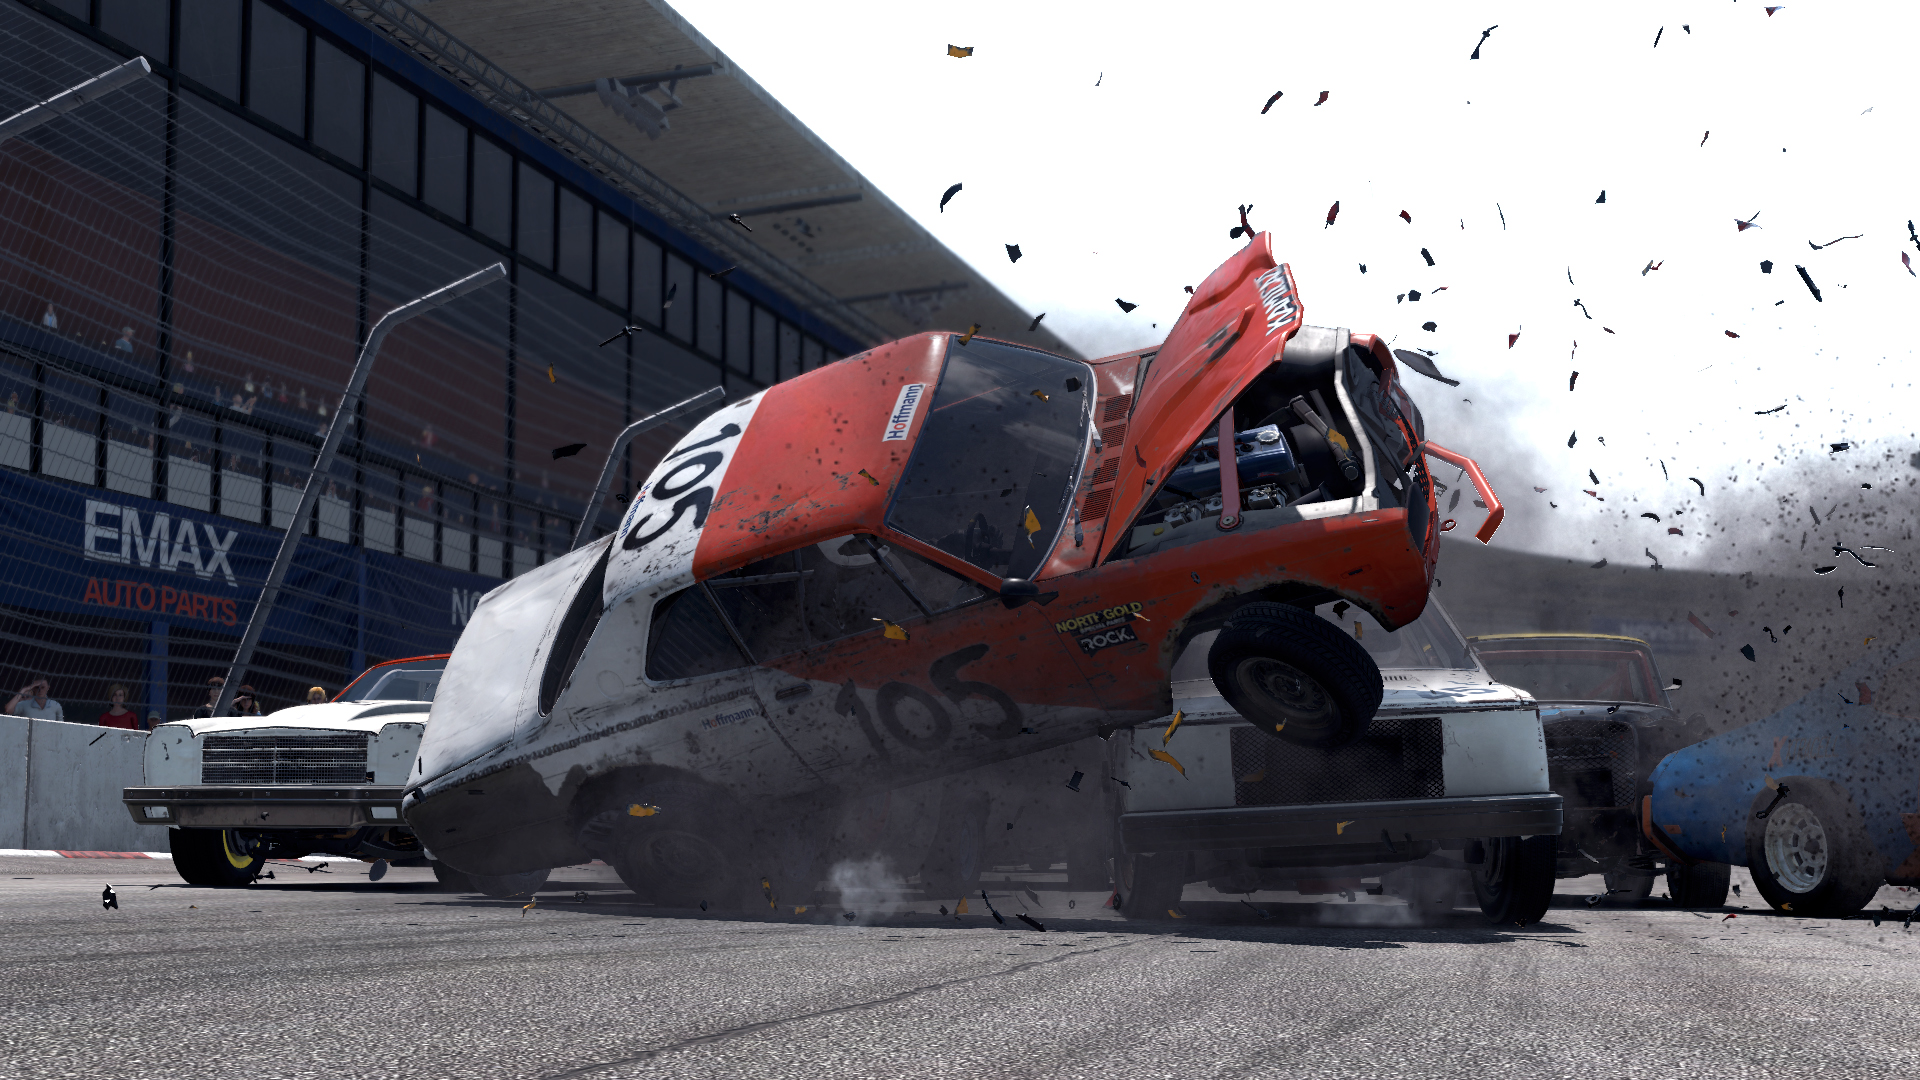 Wreckfest's beautiful disaster was the most fun I had all year